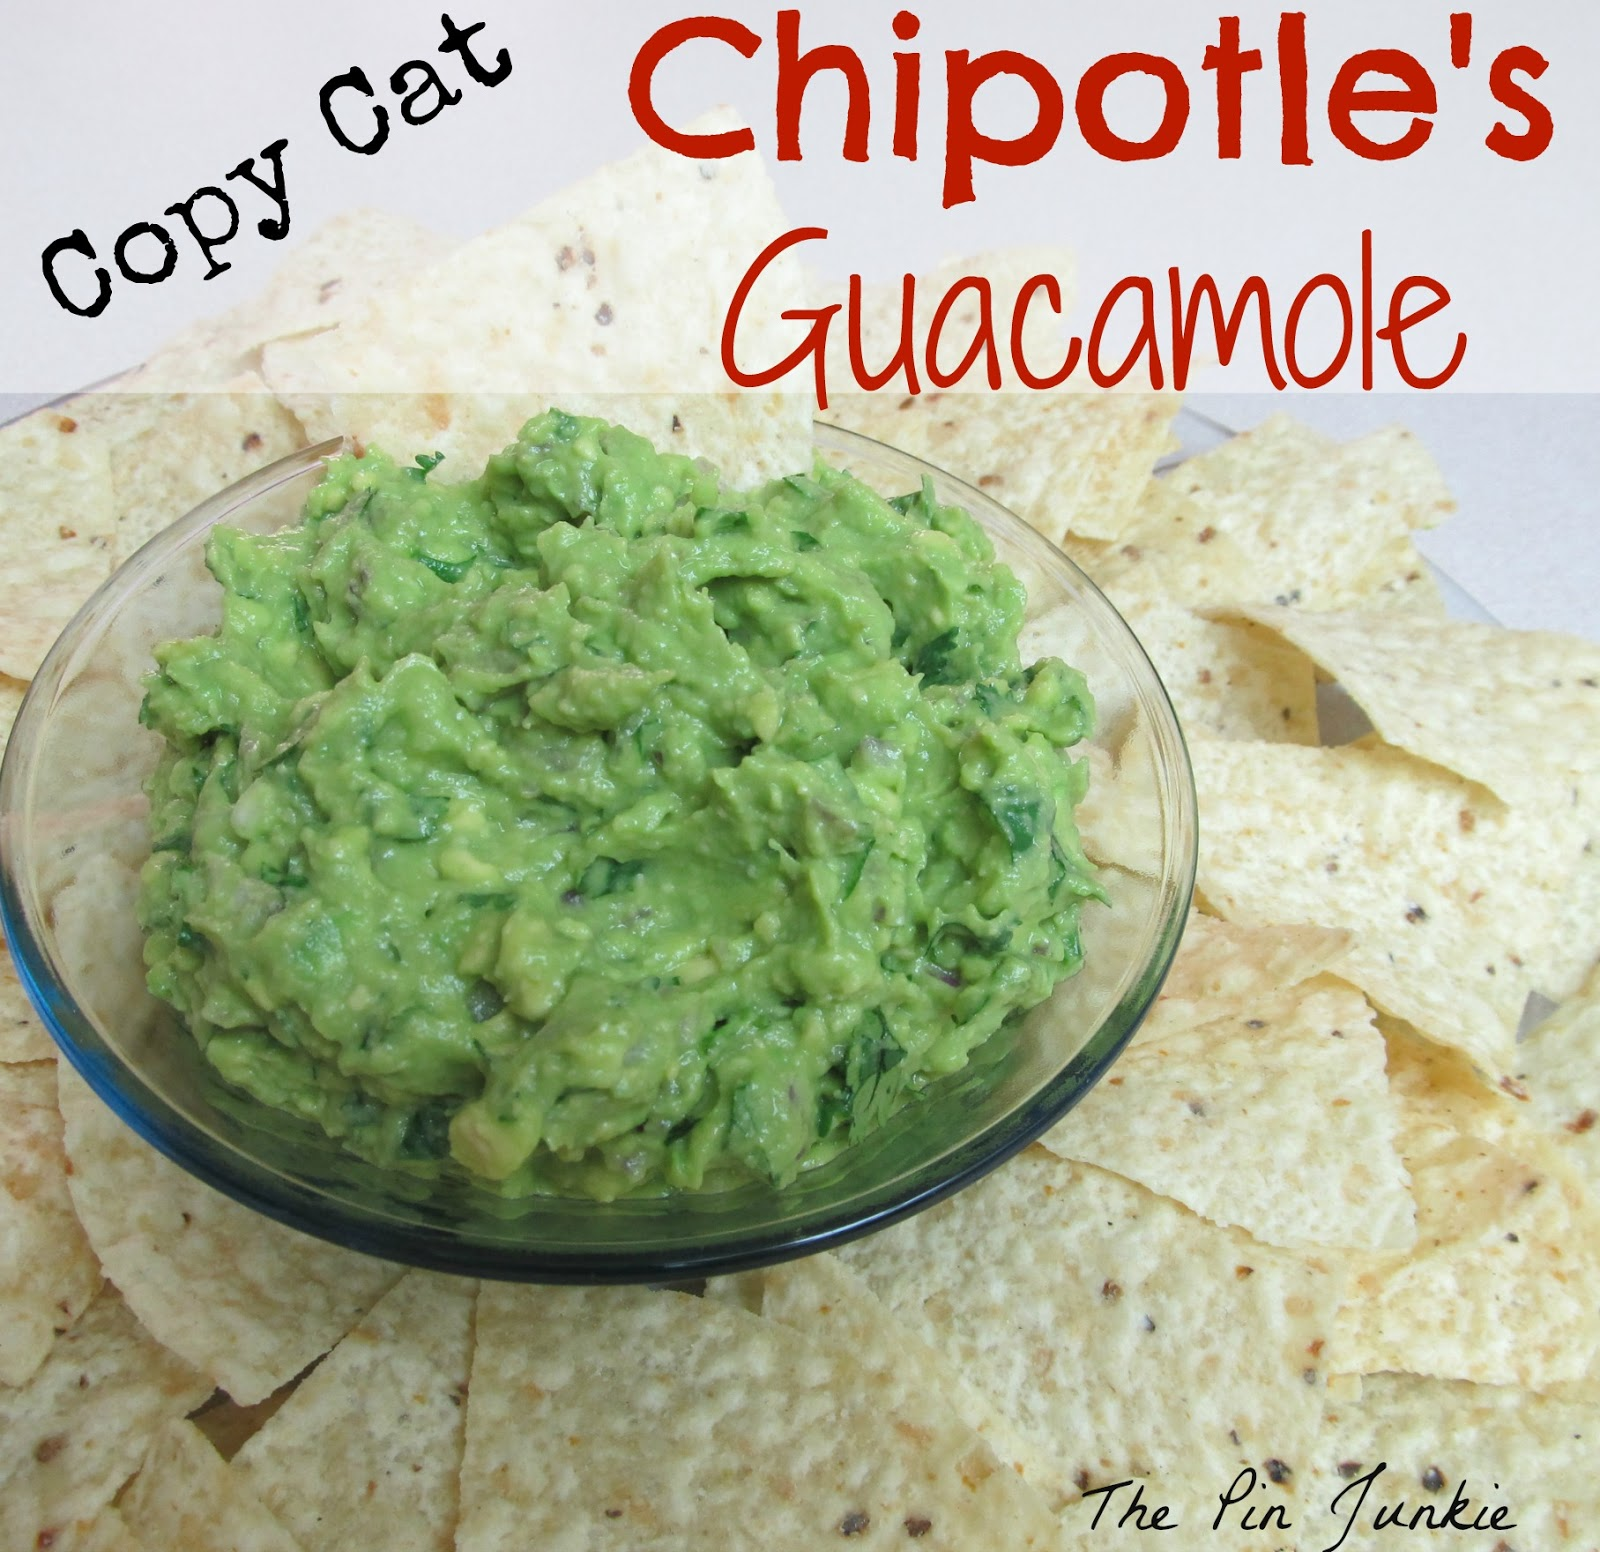 copy cat chipotles guacamole